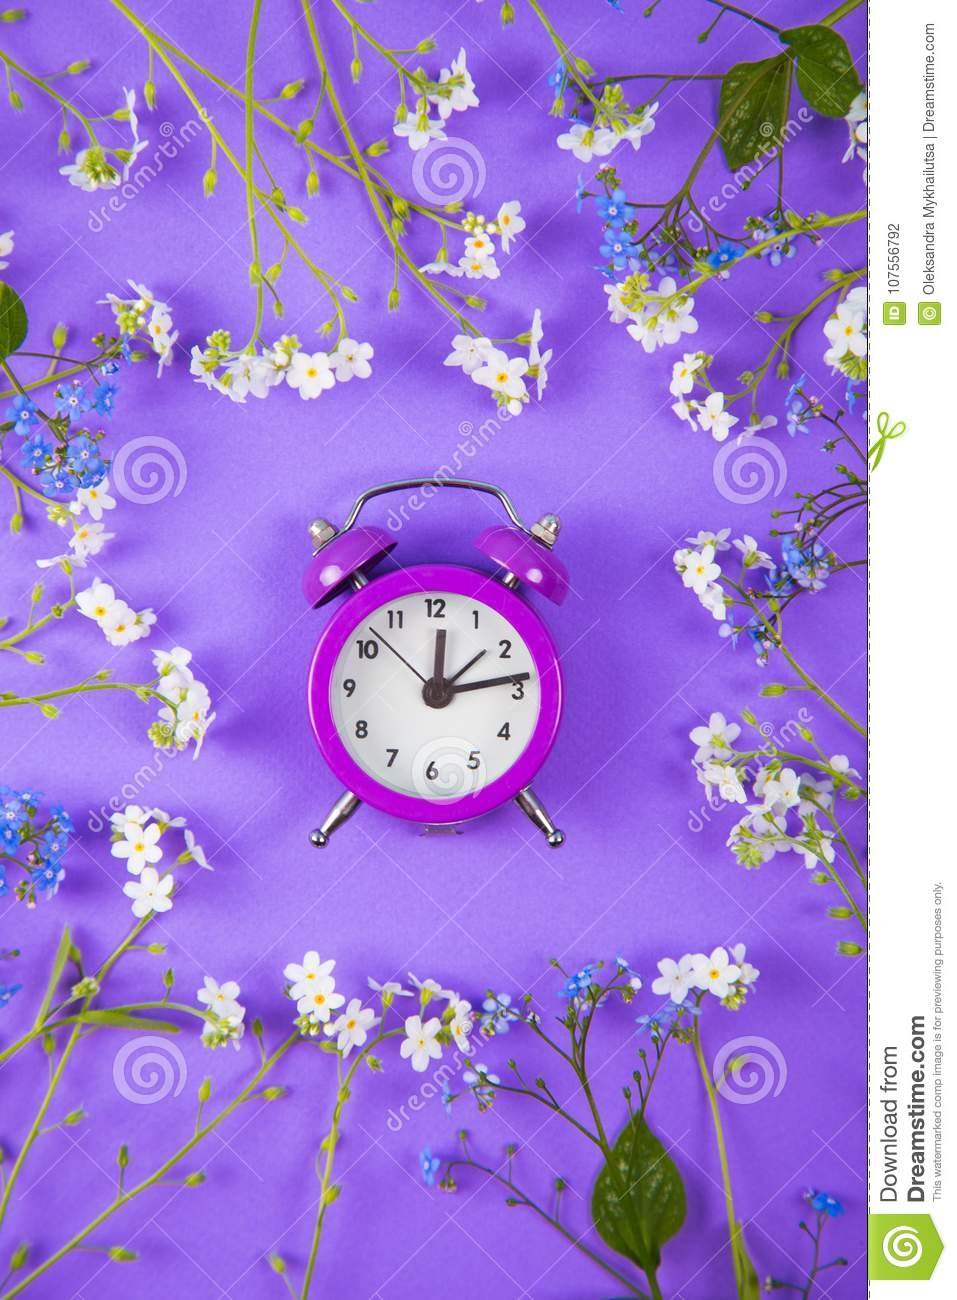 Violet Small Alarm Clock Surrounded With Blue And White Little Stock